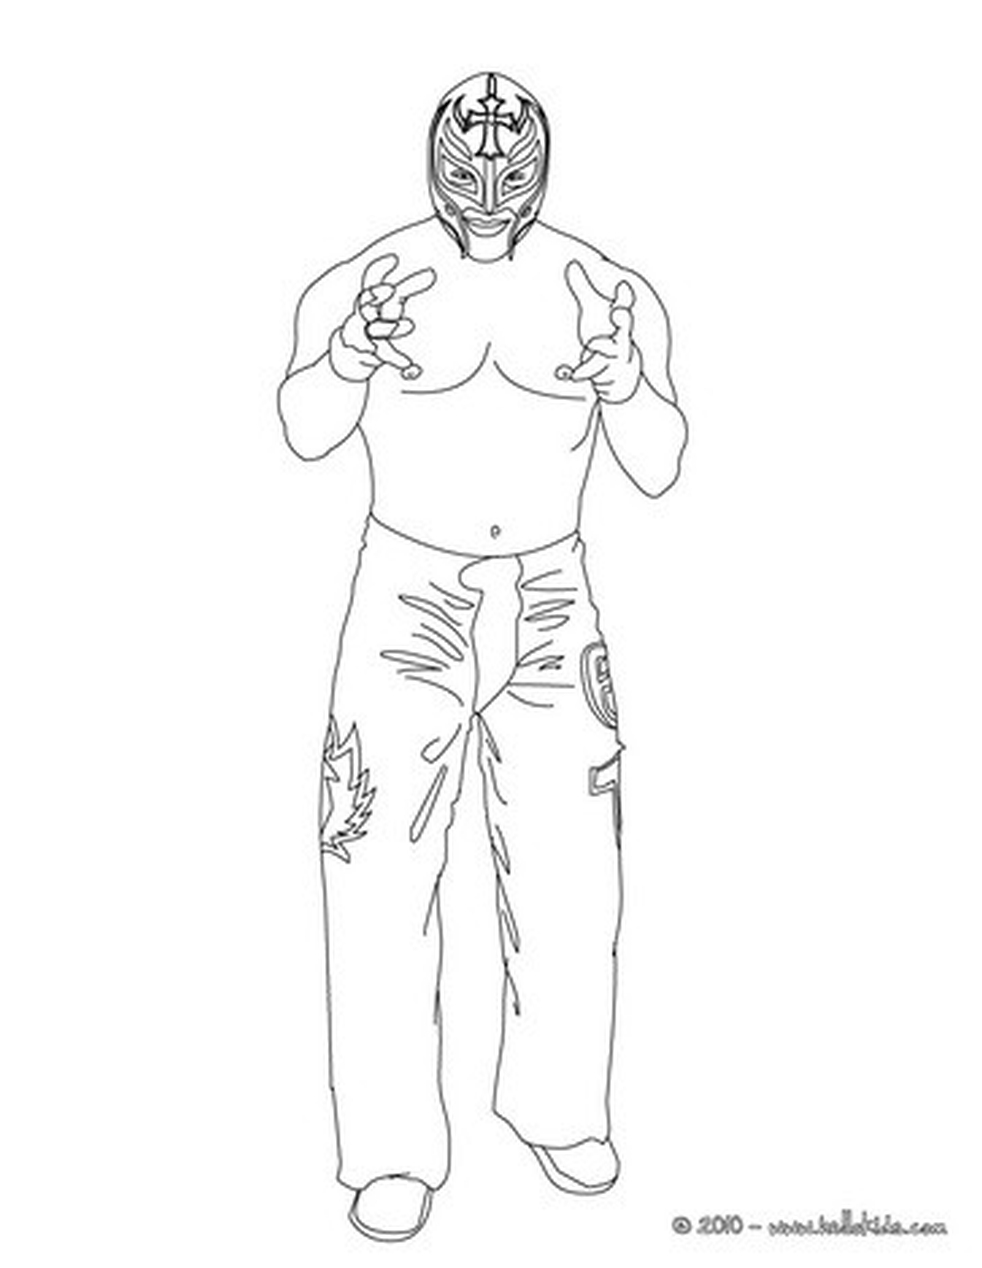 Wwe coloring pages of rey mysterio mask rey mysterio coloring pages - Printable Wwe Coloring Pages Rey Mysterio 47211